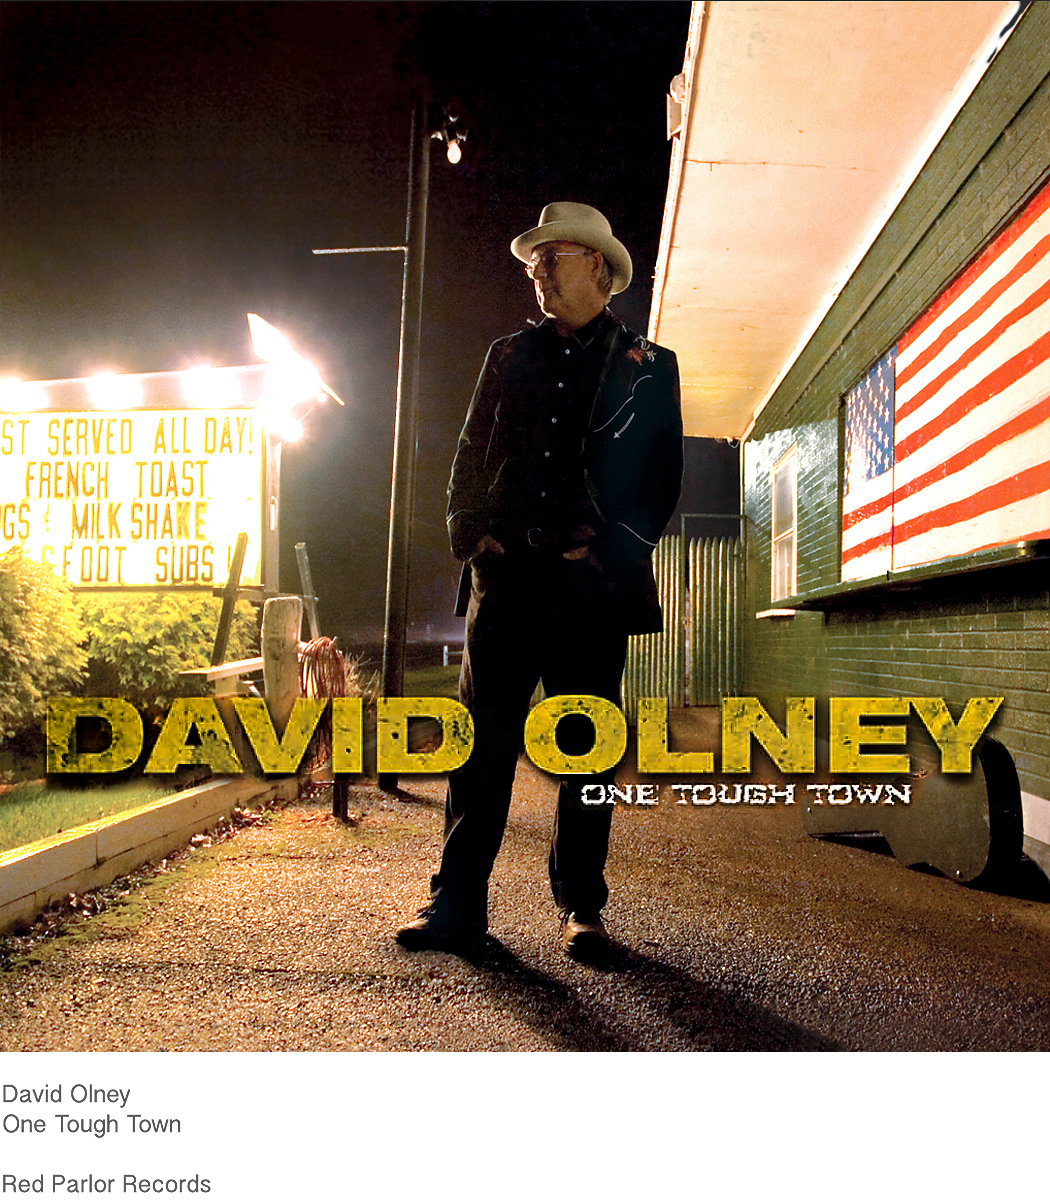 David Olney  new web .jpg